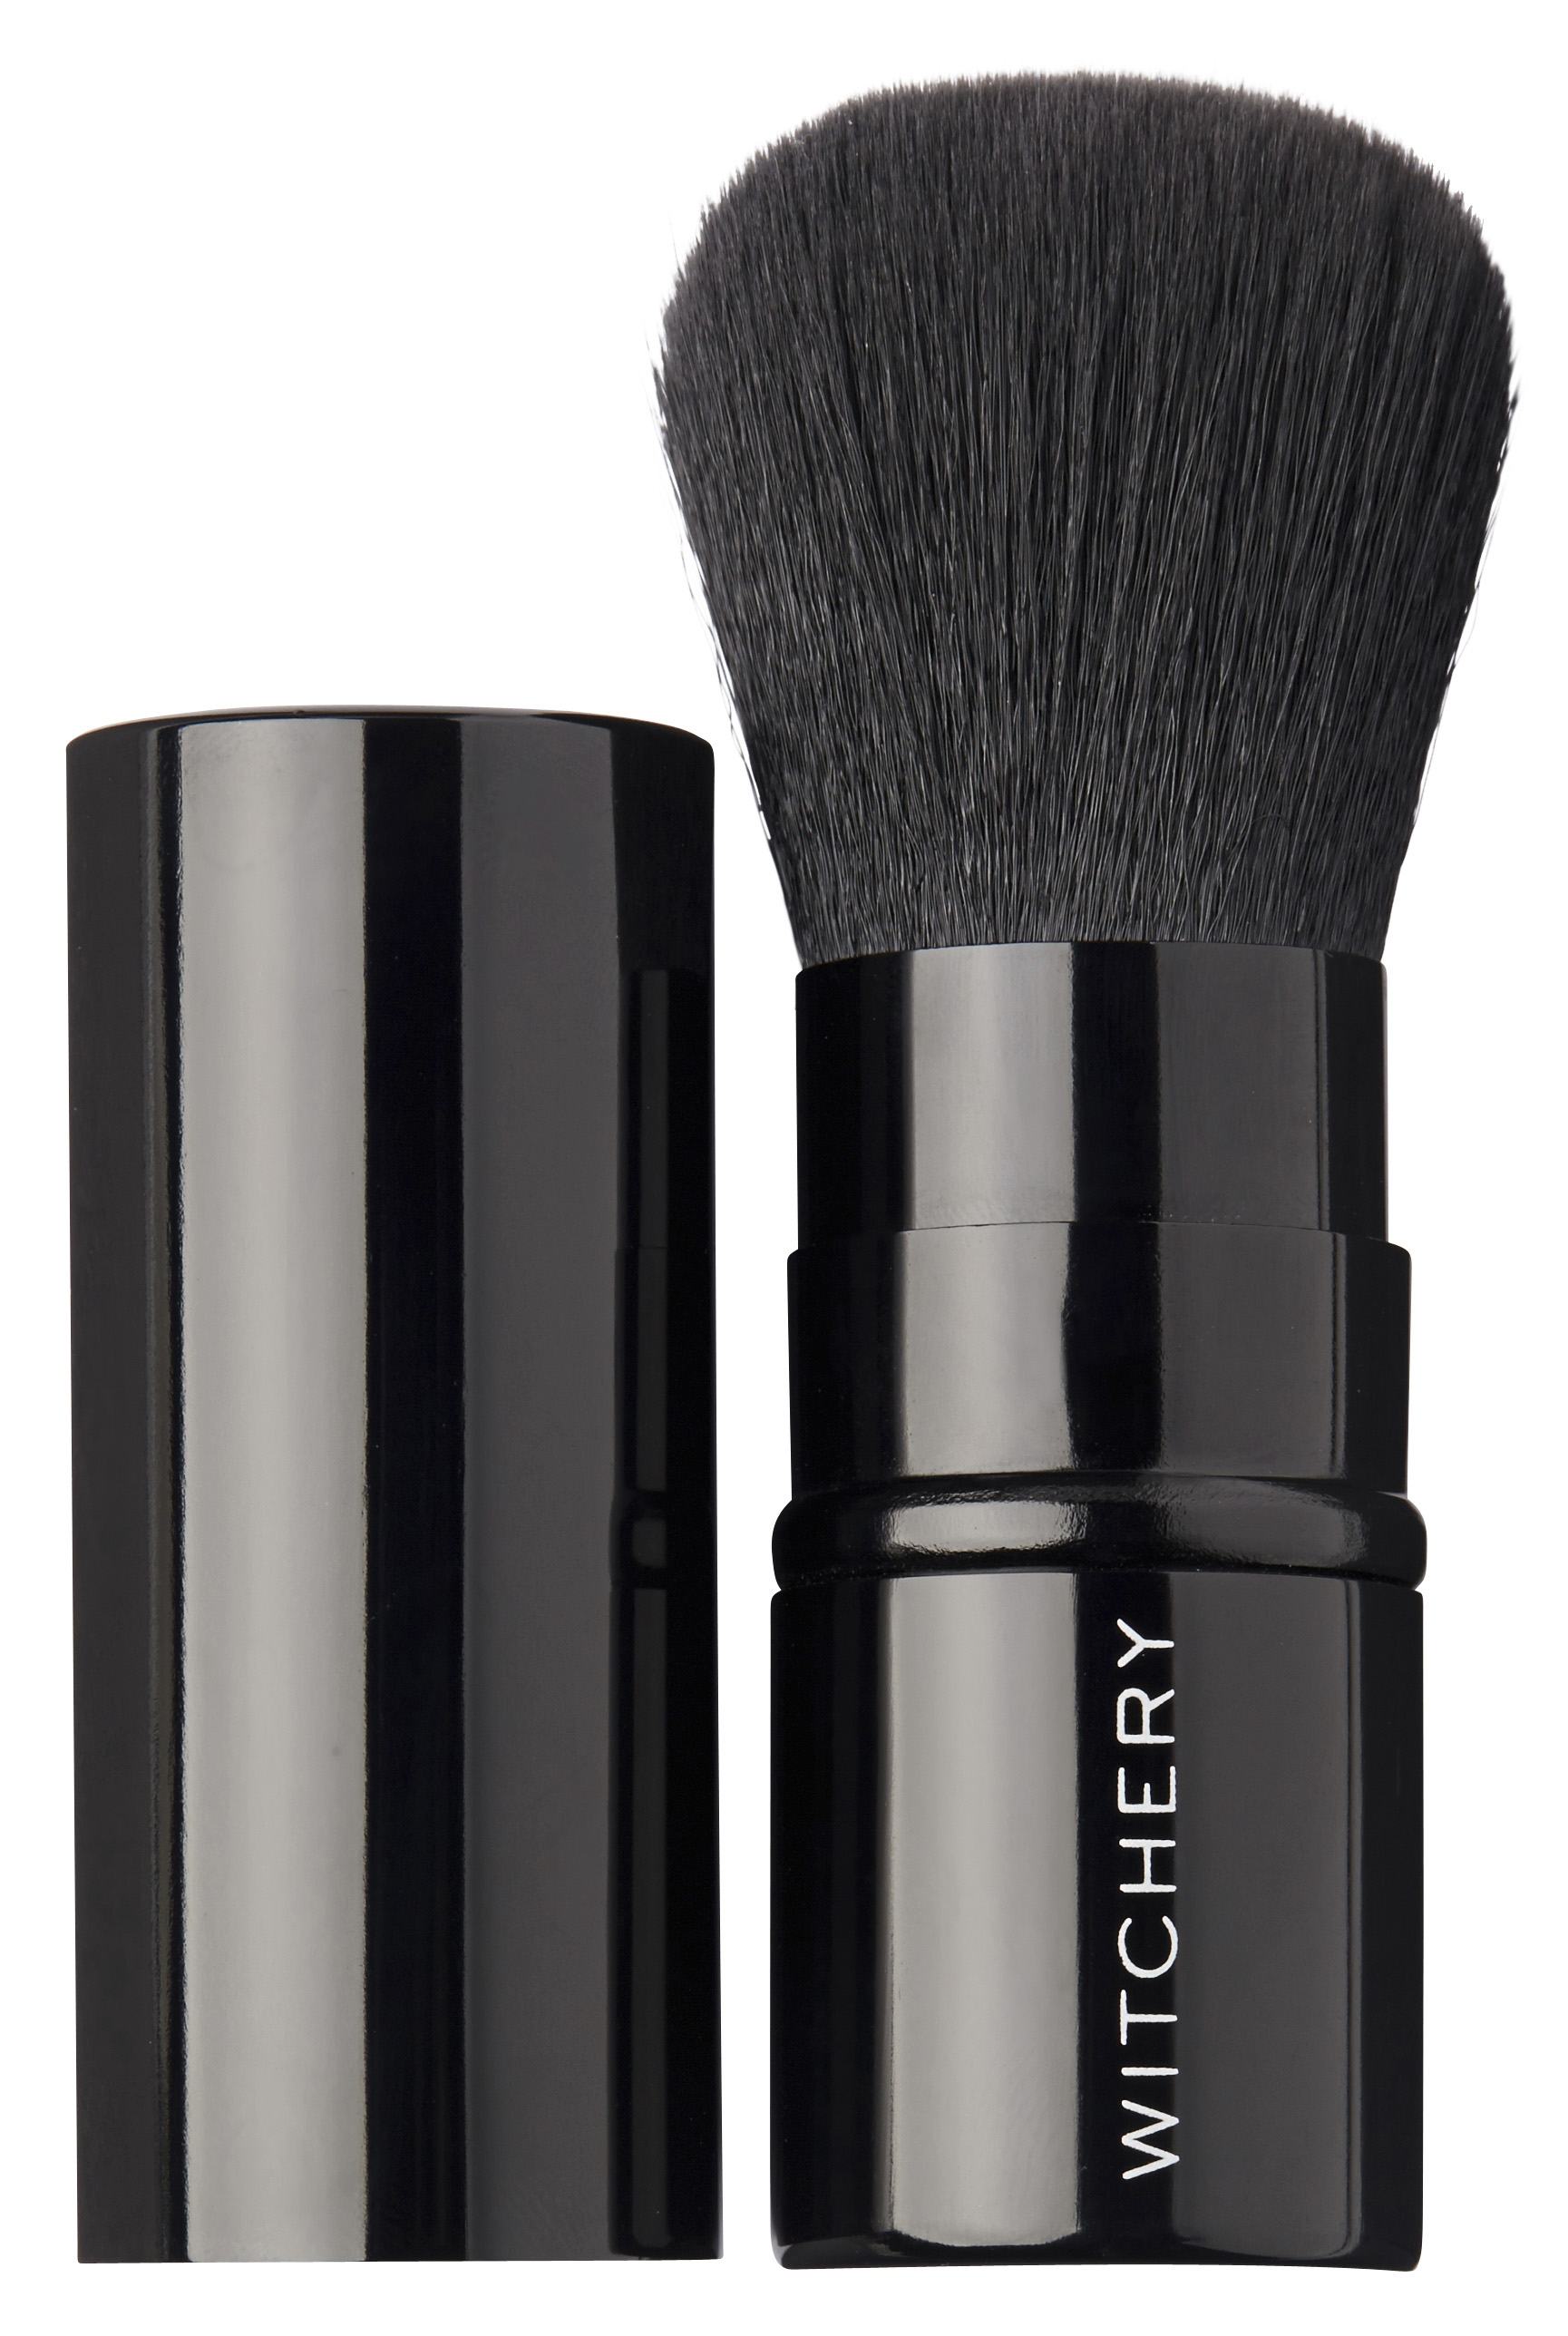 60172155_witcherybeauty-kabuki-brush-rrp21-90